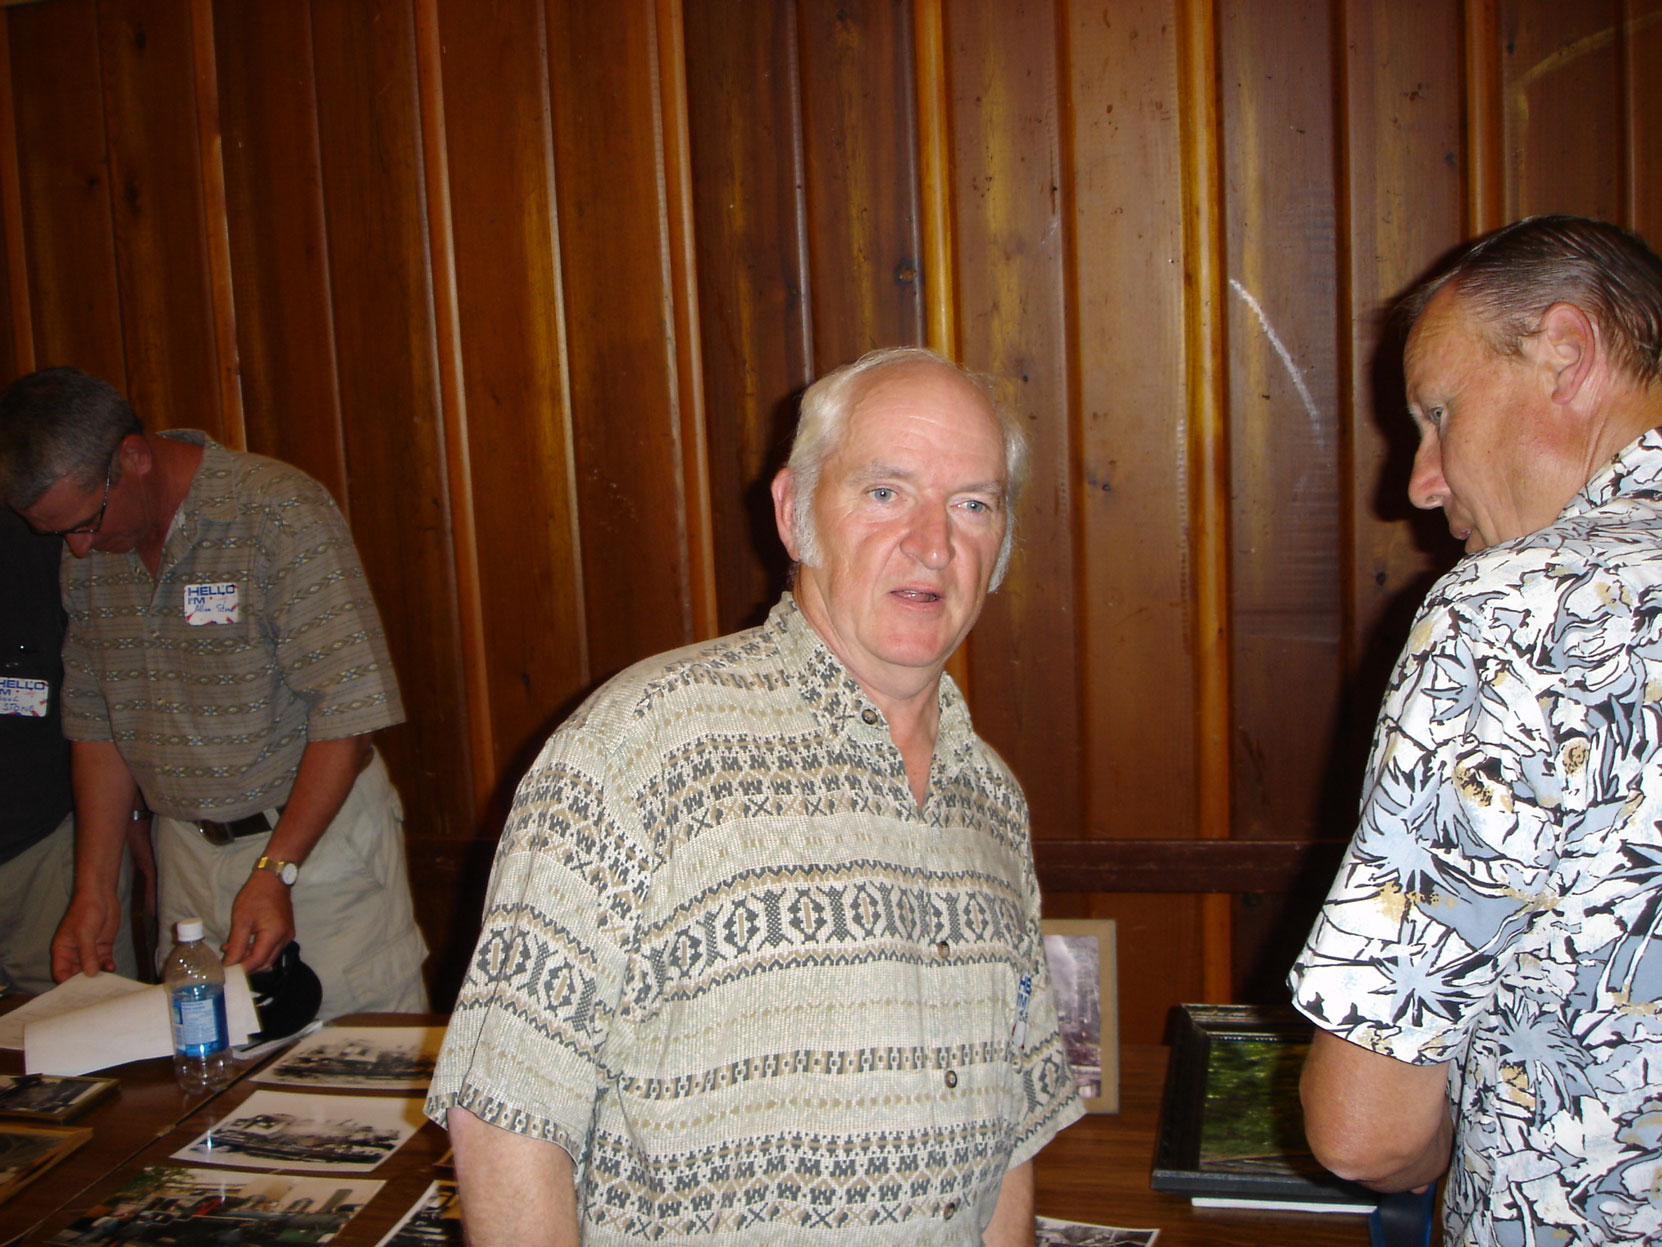 Bob Crawford at the Hillcrest Lumber Co. Employees Reunion in 2005. (photo courtesy of Cecil Ashley)